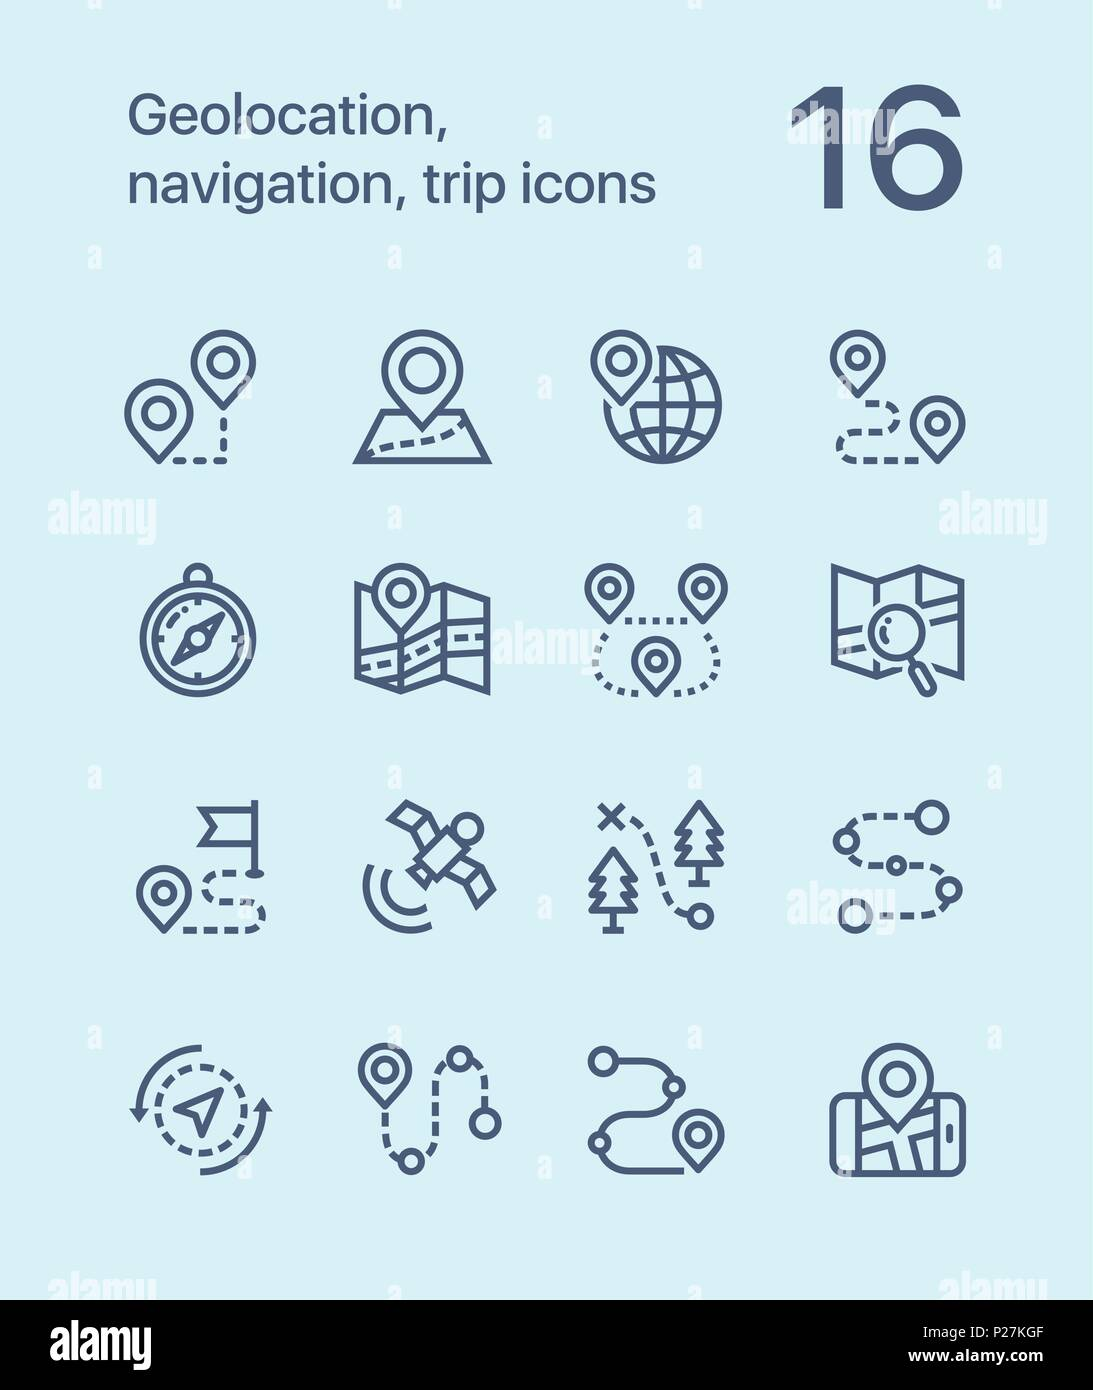 Outline Geolocation, navigation, trip icons for web and mobile design pack 1 - Stock Vector